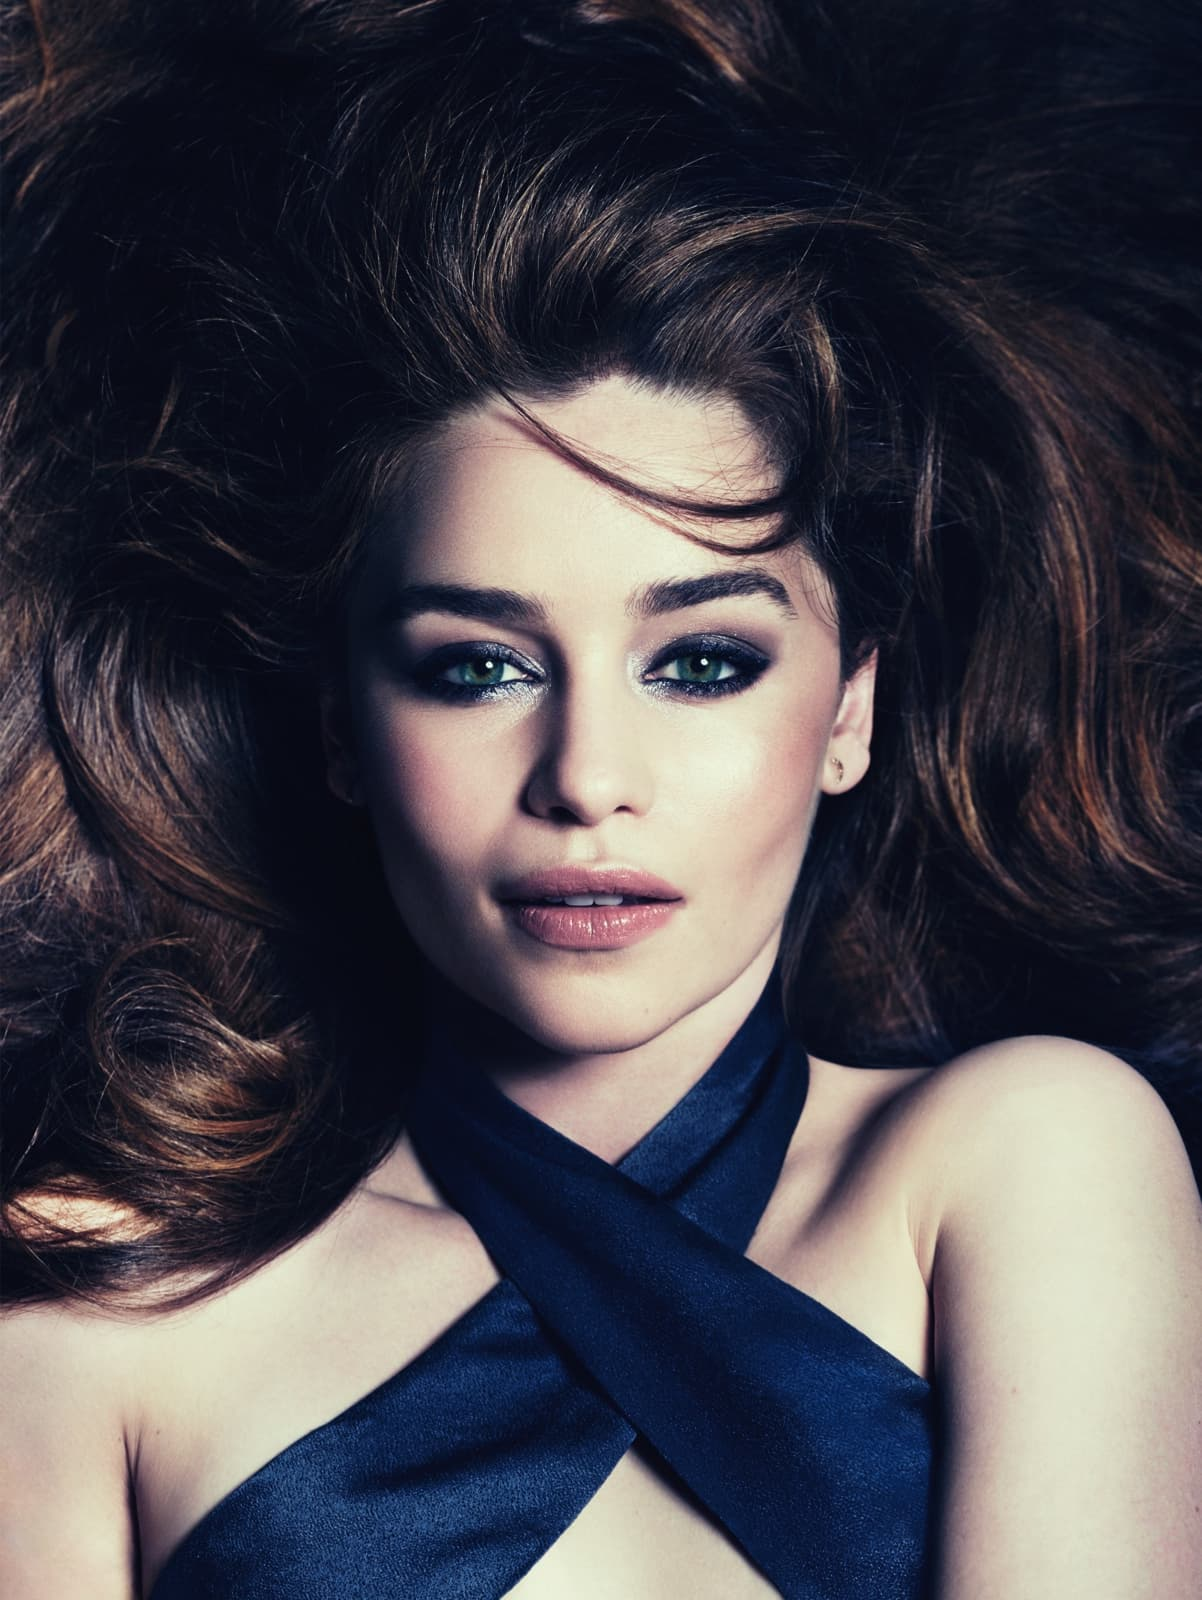 Nature Hd Wallpapers For Iphone 15 Emilia Clarke Wallpapers Hd High Quality Resolution